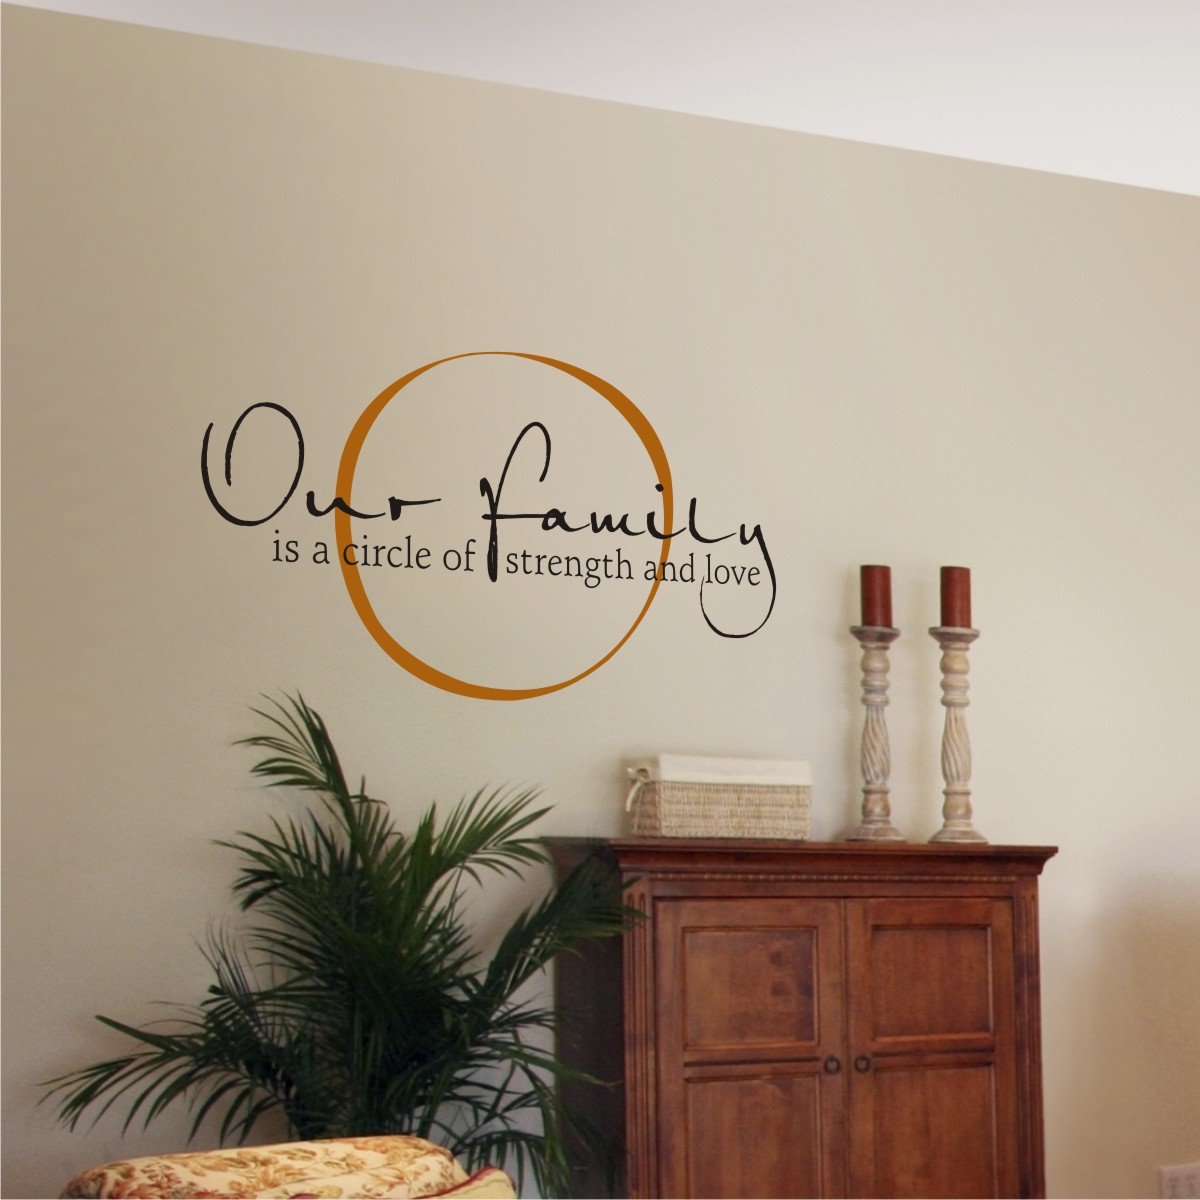 Love Quotes Vinyl Wall Art : Vinyl wall quotes quotesgram